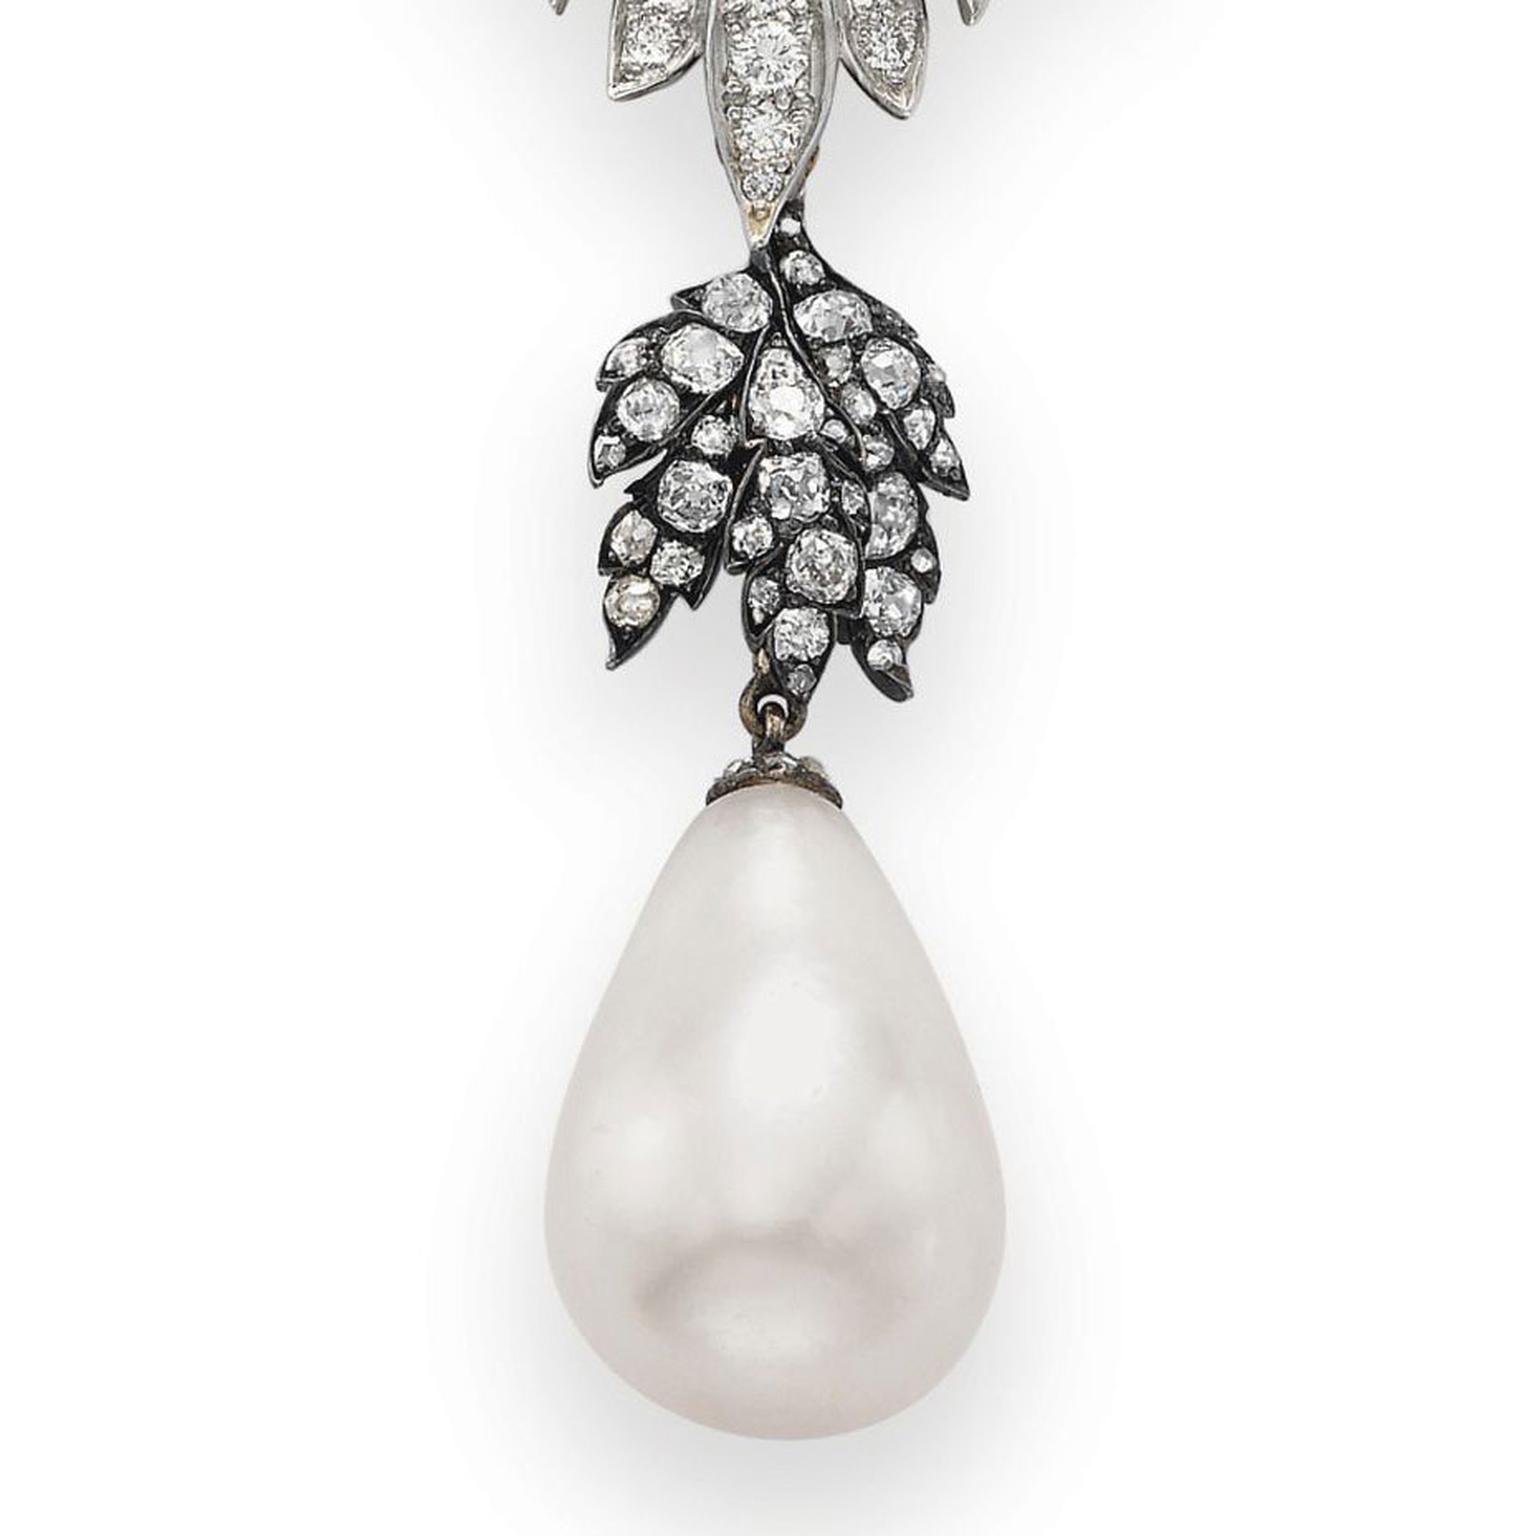 Cartier La Peregrina pearl necklace - close up